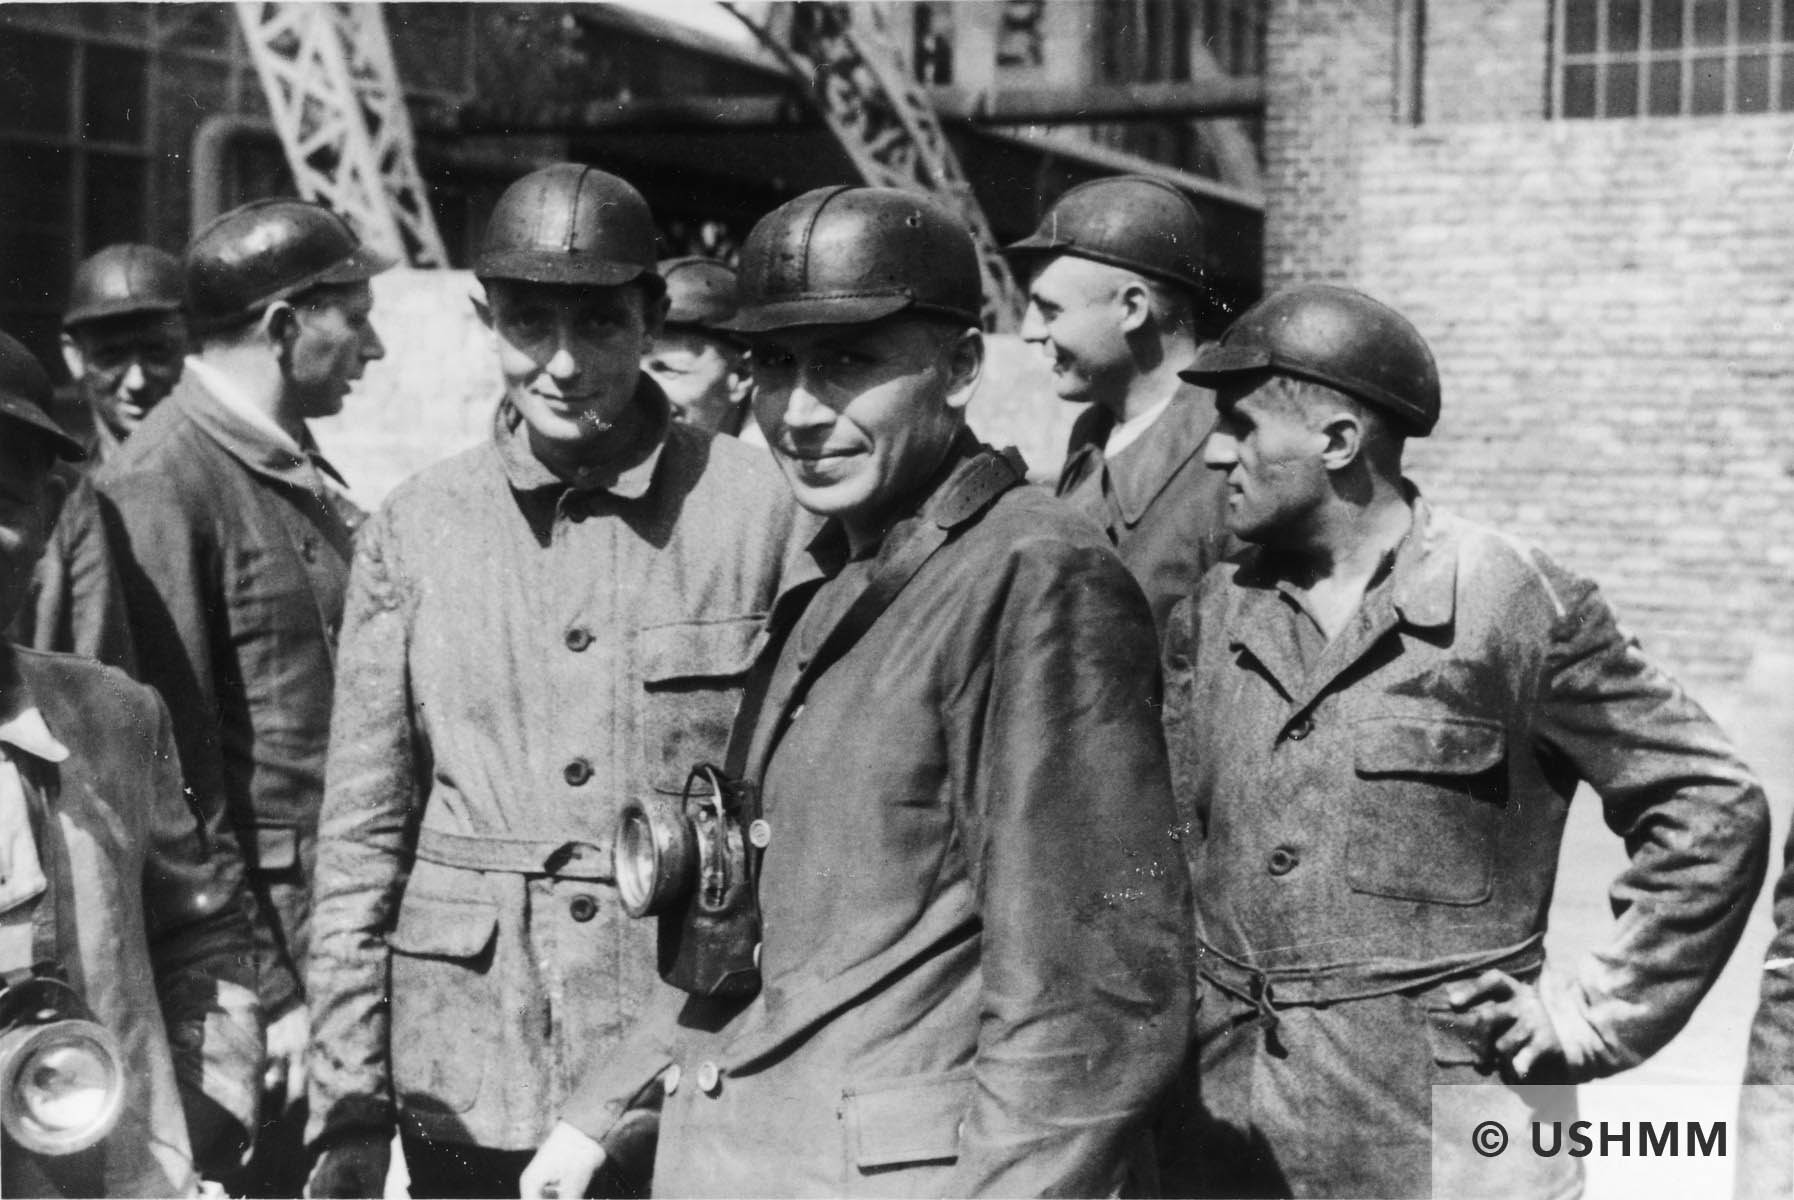 A large group of SS officers visit a coal mine near Auschwitz. 1944 USHMM 34829